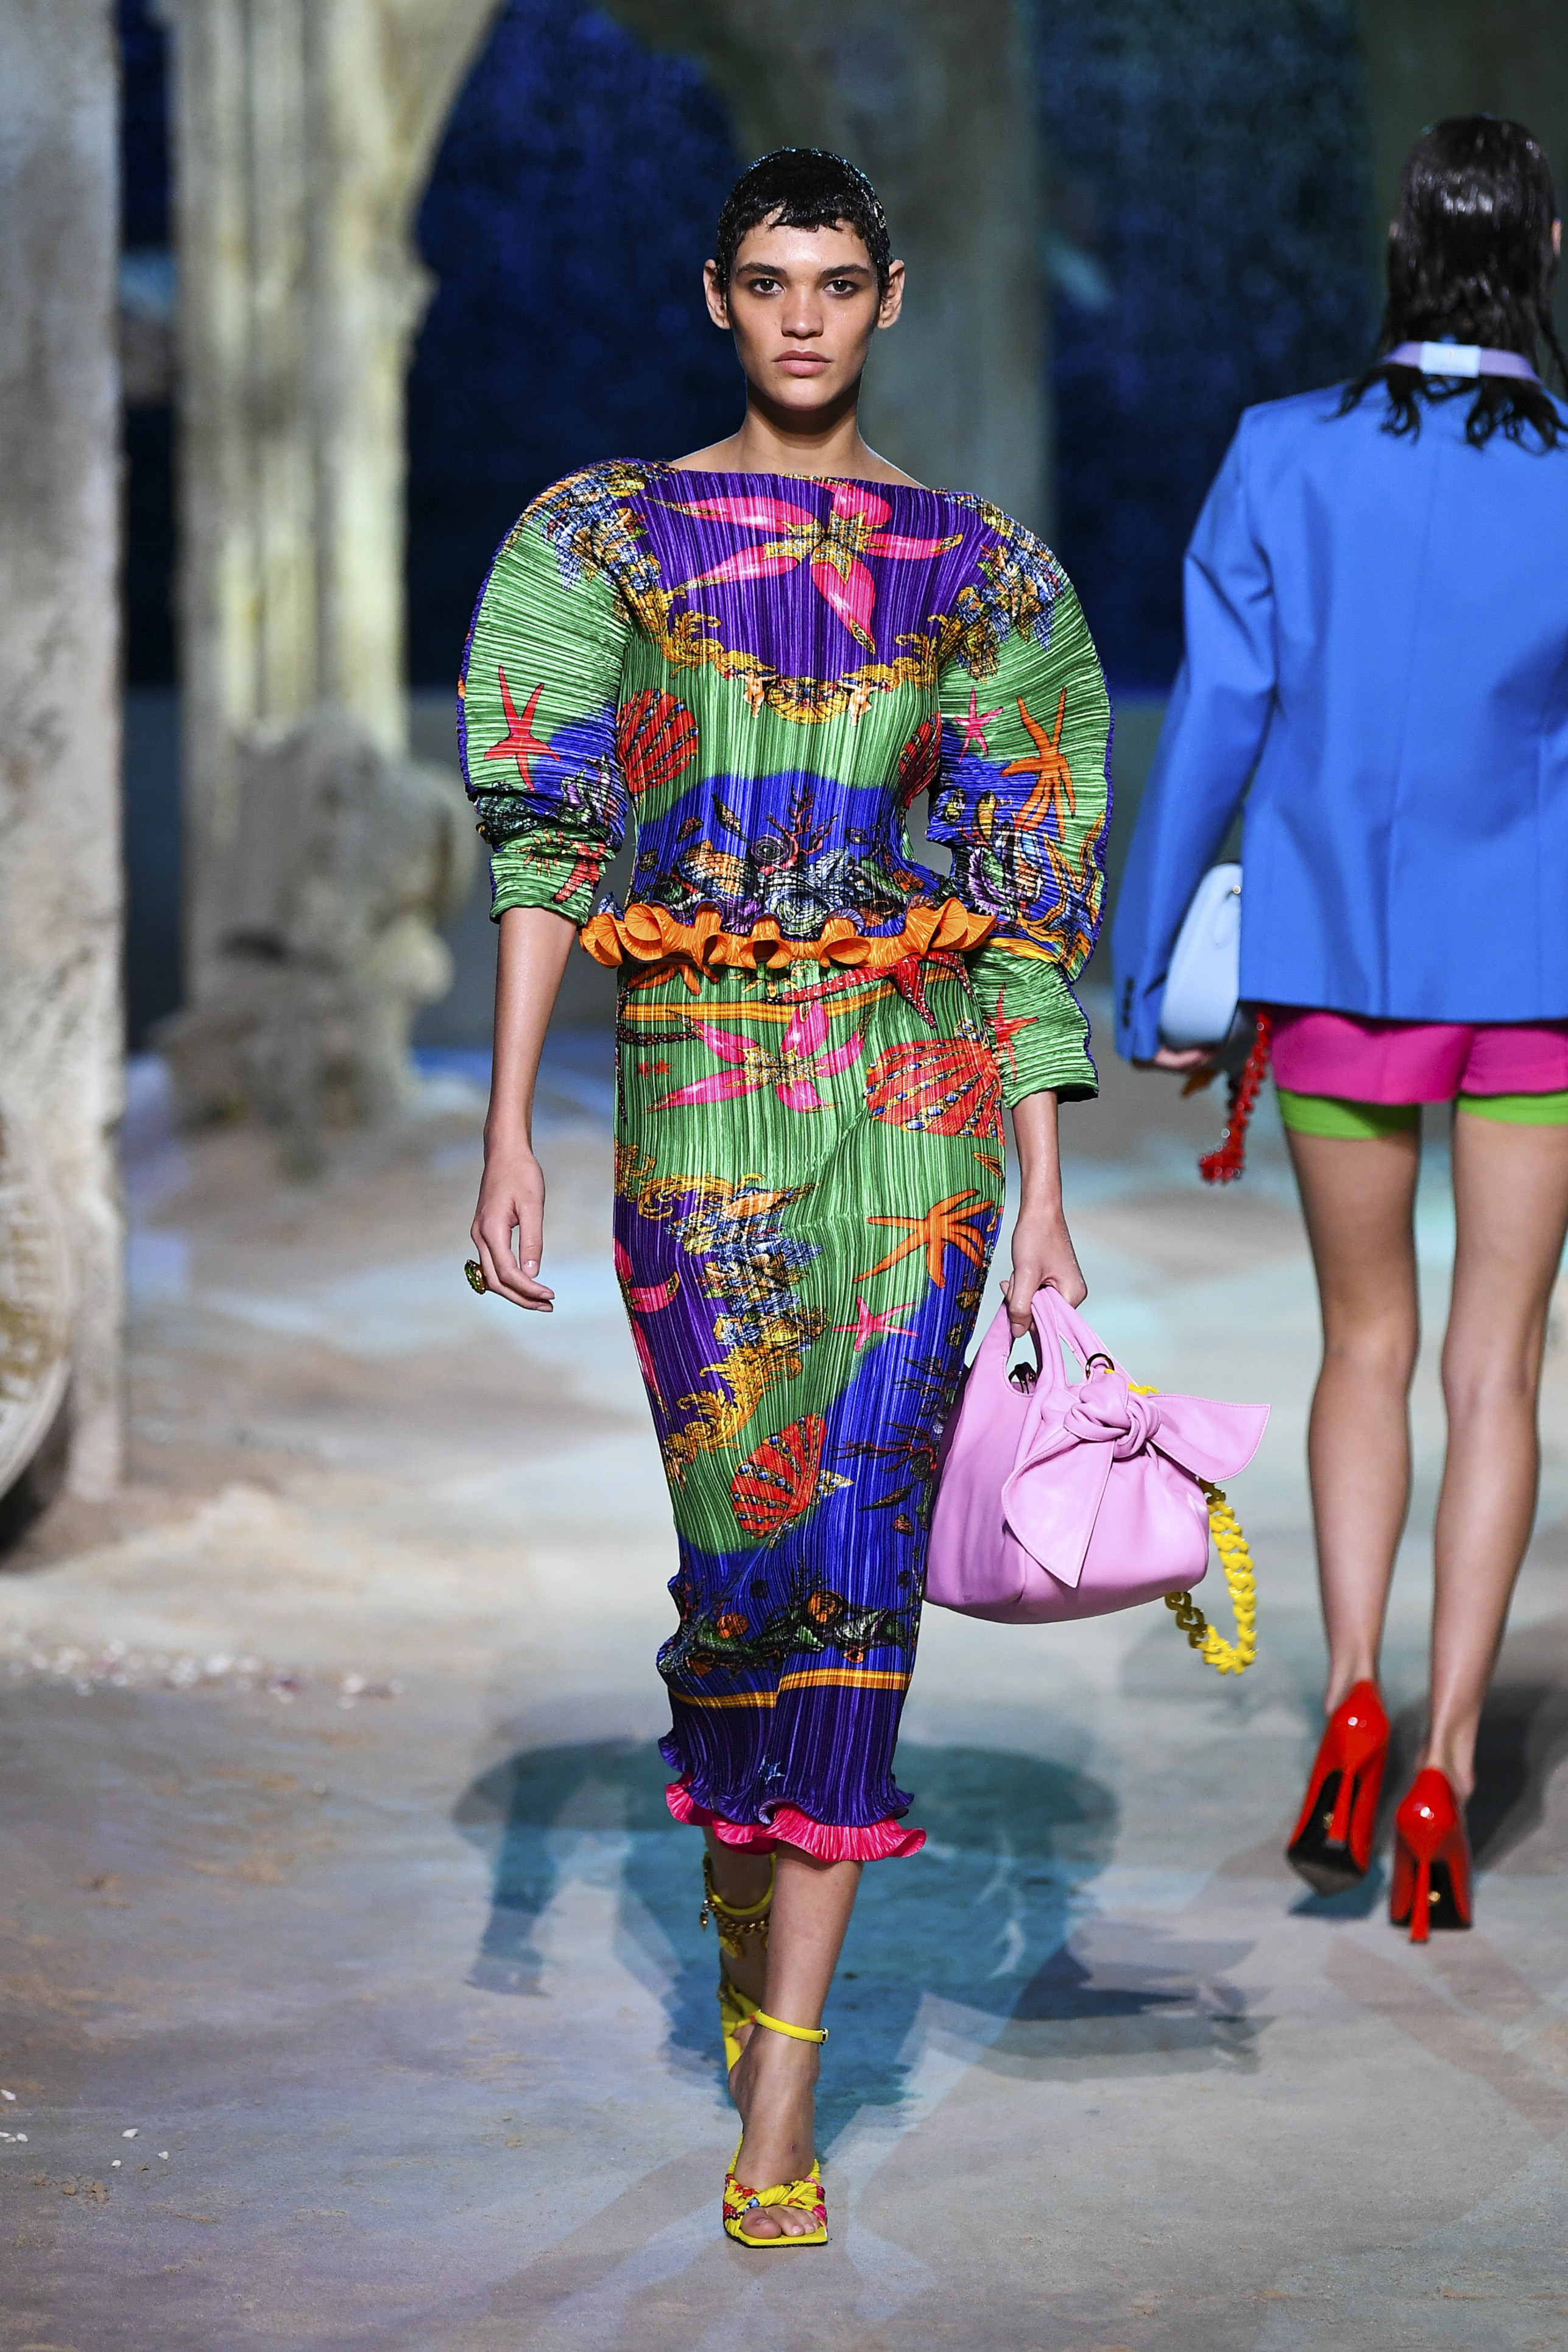 Prints galore: Dolce & Gabbana and Versace's Spring/Summer '21 collection (фото 22)